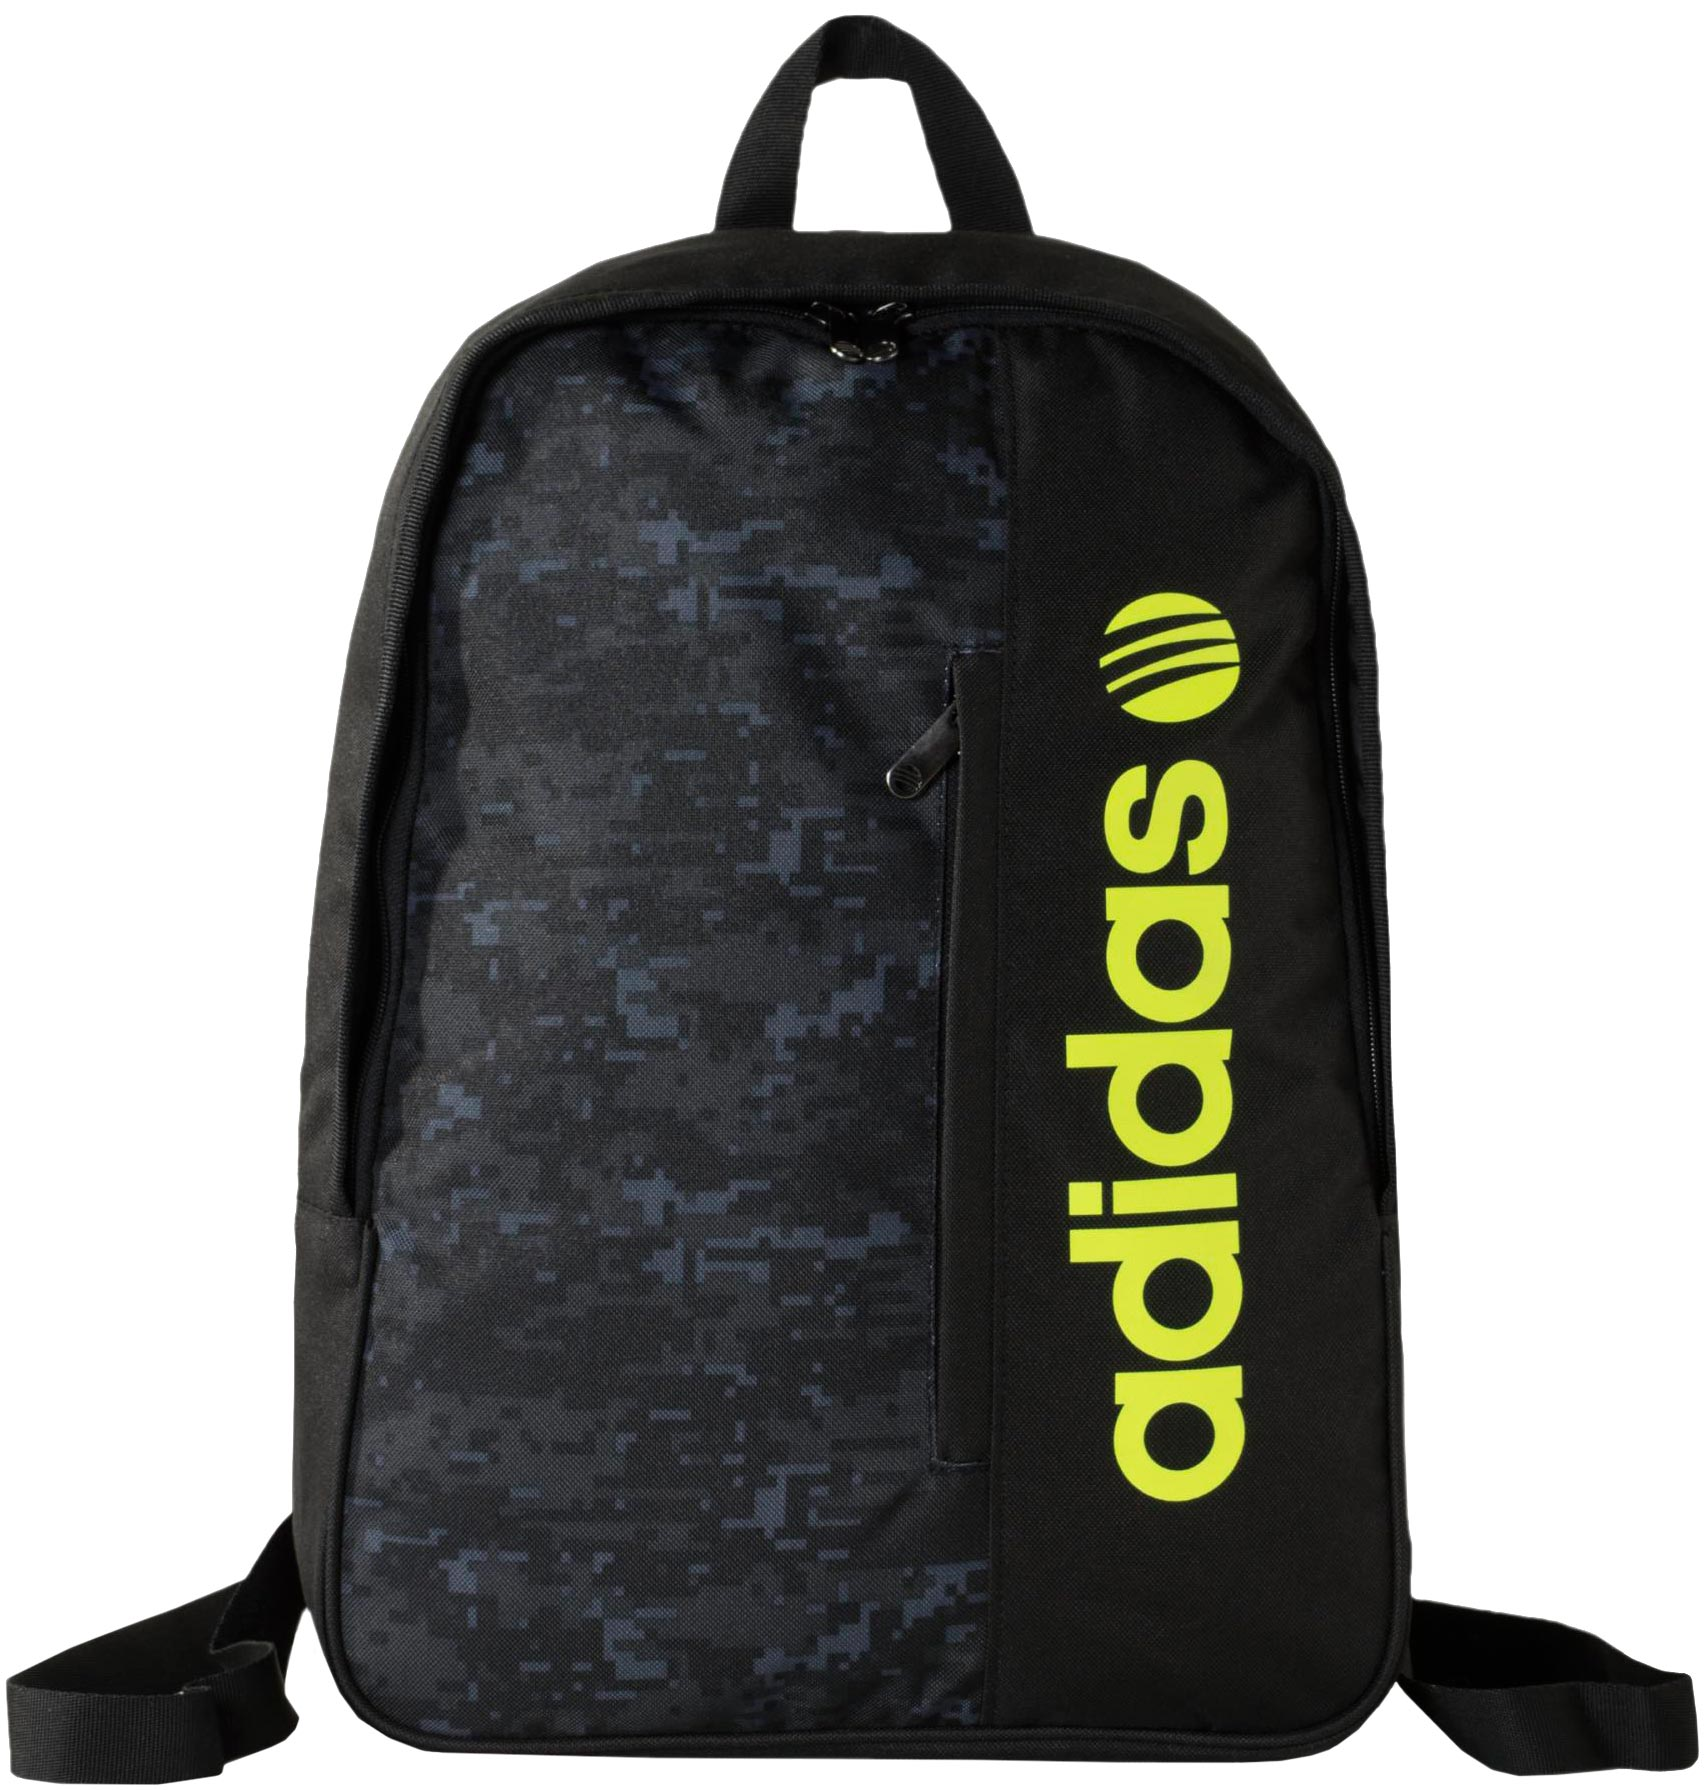 adidas neo sc backpack. Black Bedroom Furniture Sets. Home Design Ideas